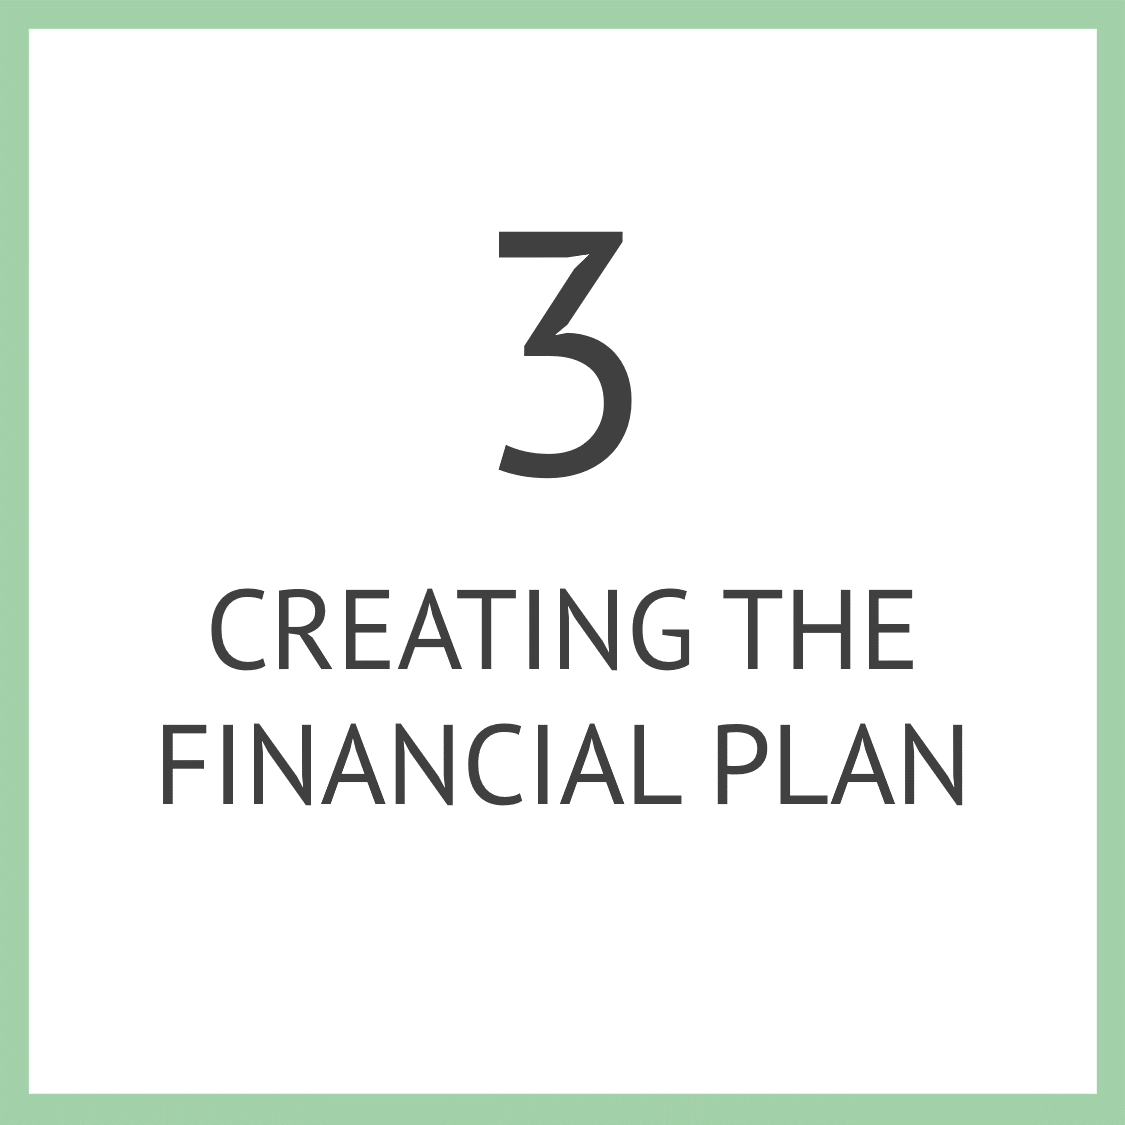 This is here the magic happens. We take everything we know about you to build a full and clear picture of your situation and create a plan that is fully bespoke to you.  We create several 'what if'?' scenarios to show you the different routes you could take to achieving the life goals we've previously identified.